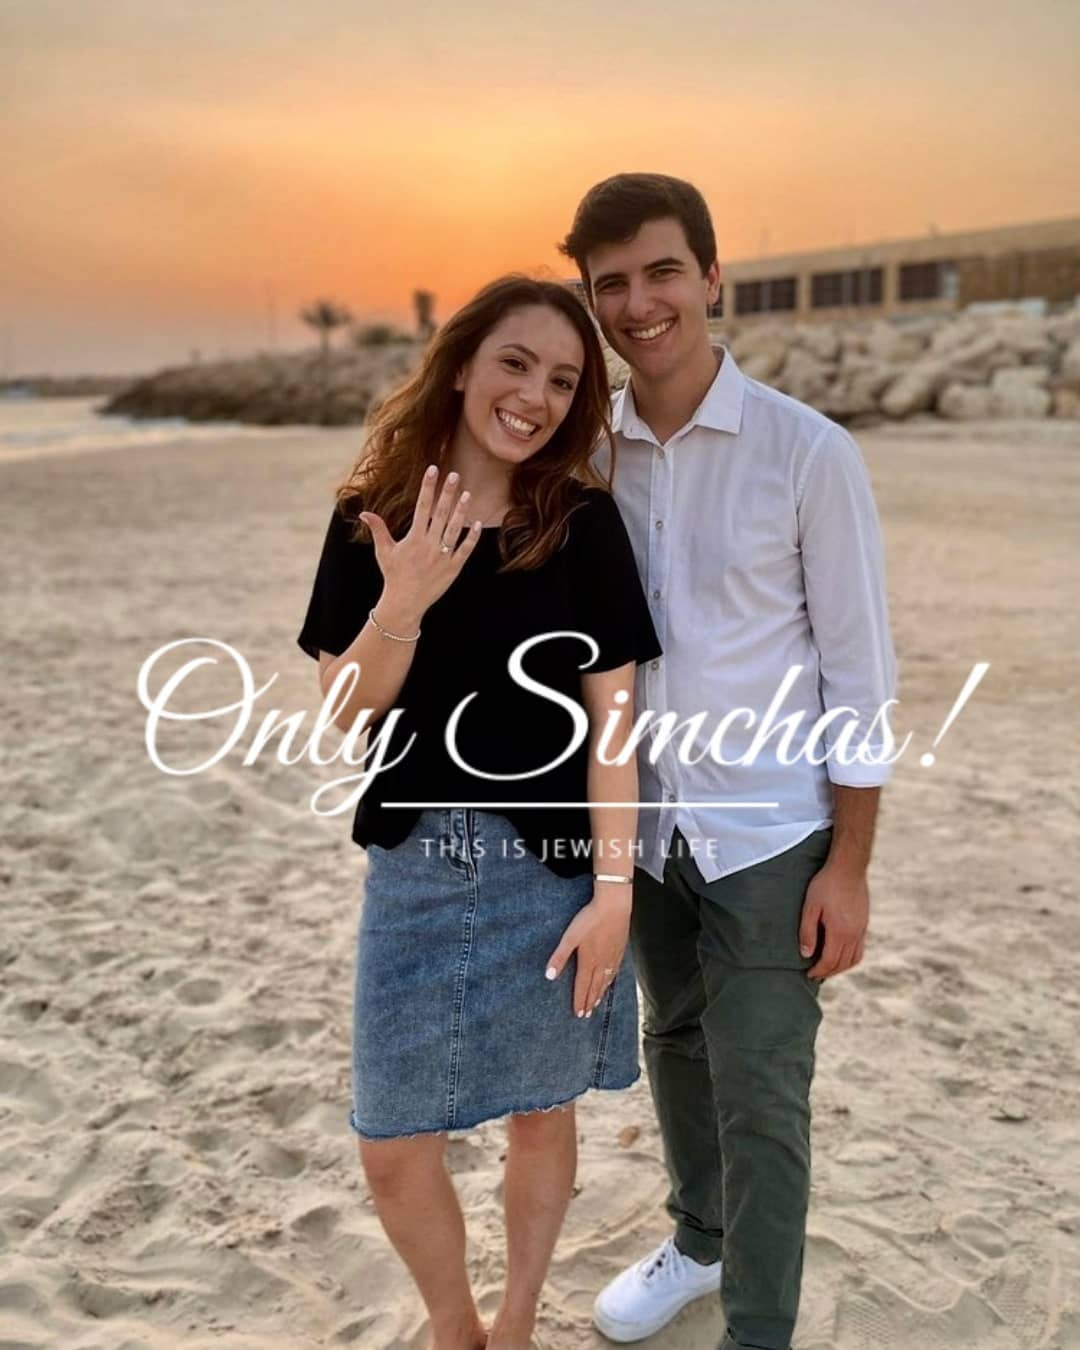 Engagement of Ariel Cohen (#SanFrancisco) and Koby Geduld (#Cleveland #israel)! #onlysimchas